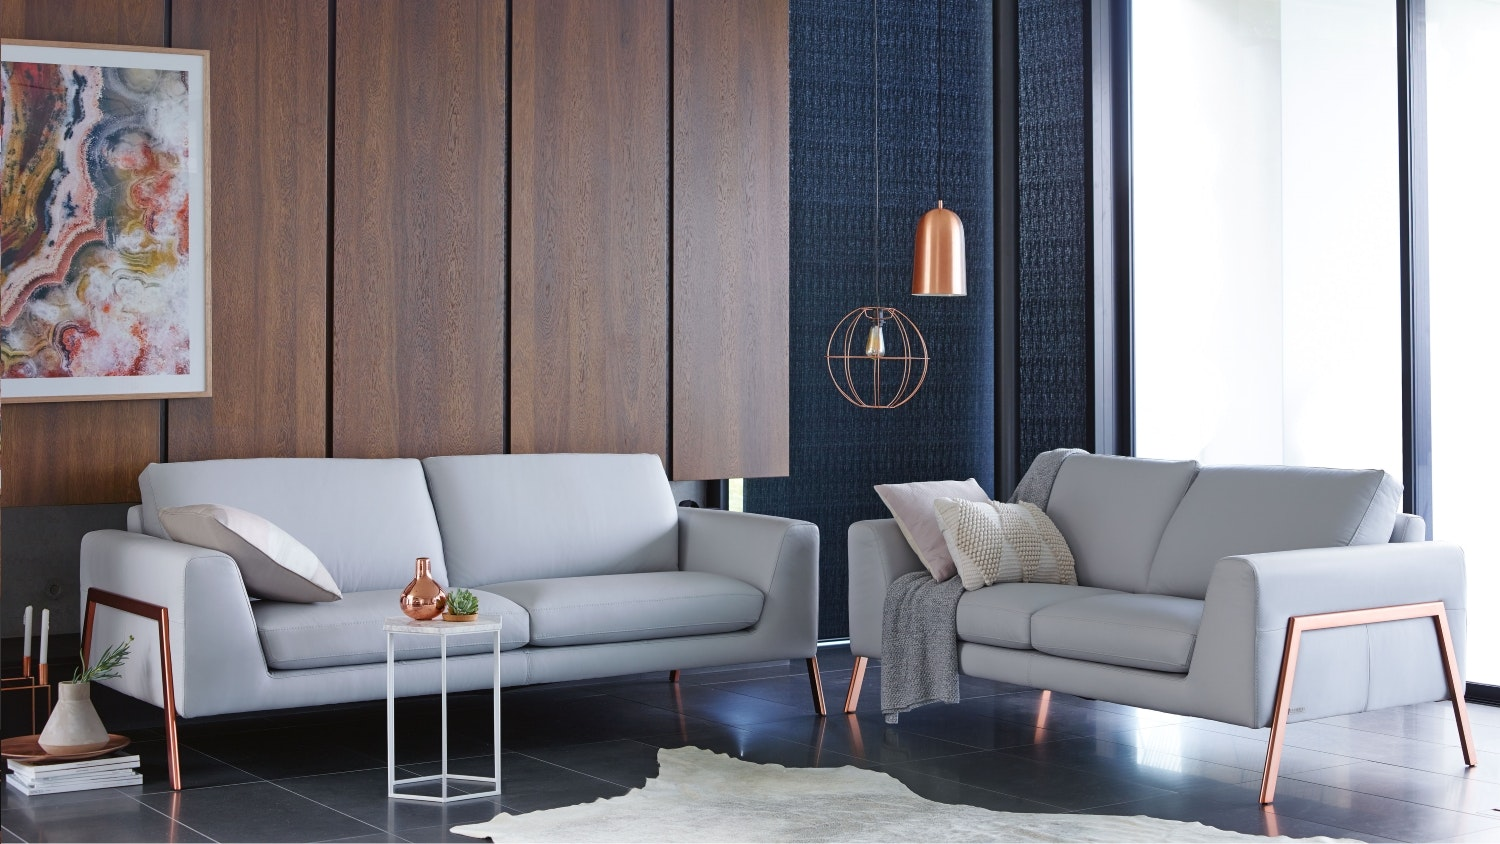 Trista 3 Seater + 2 Seater Leather Sofa Package